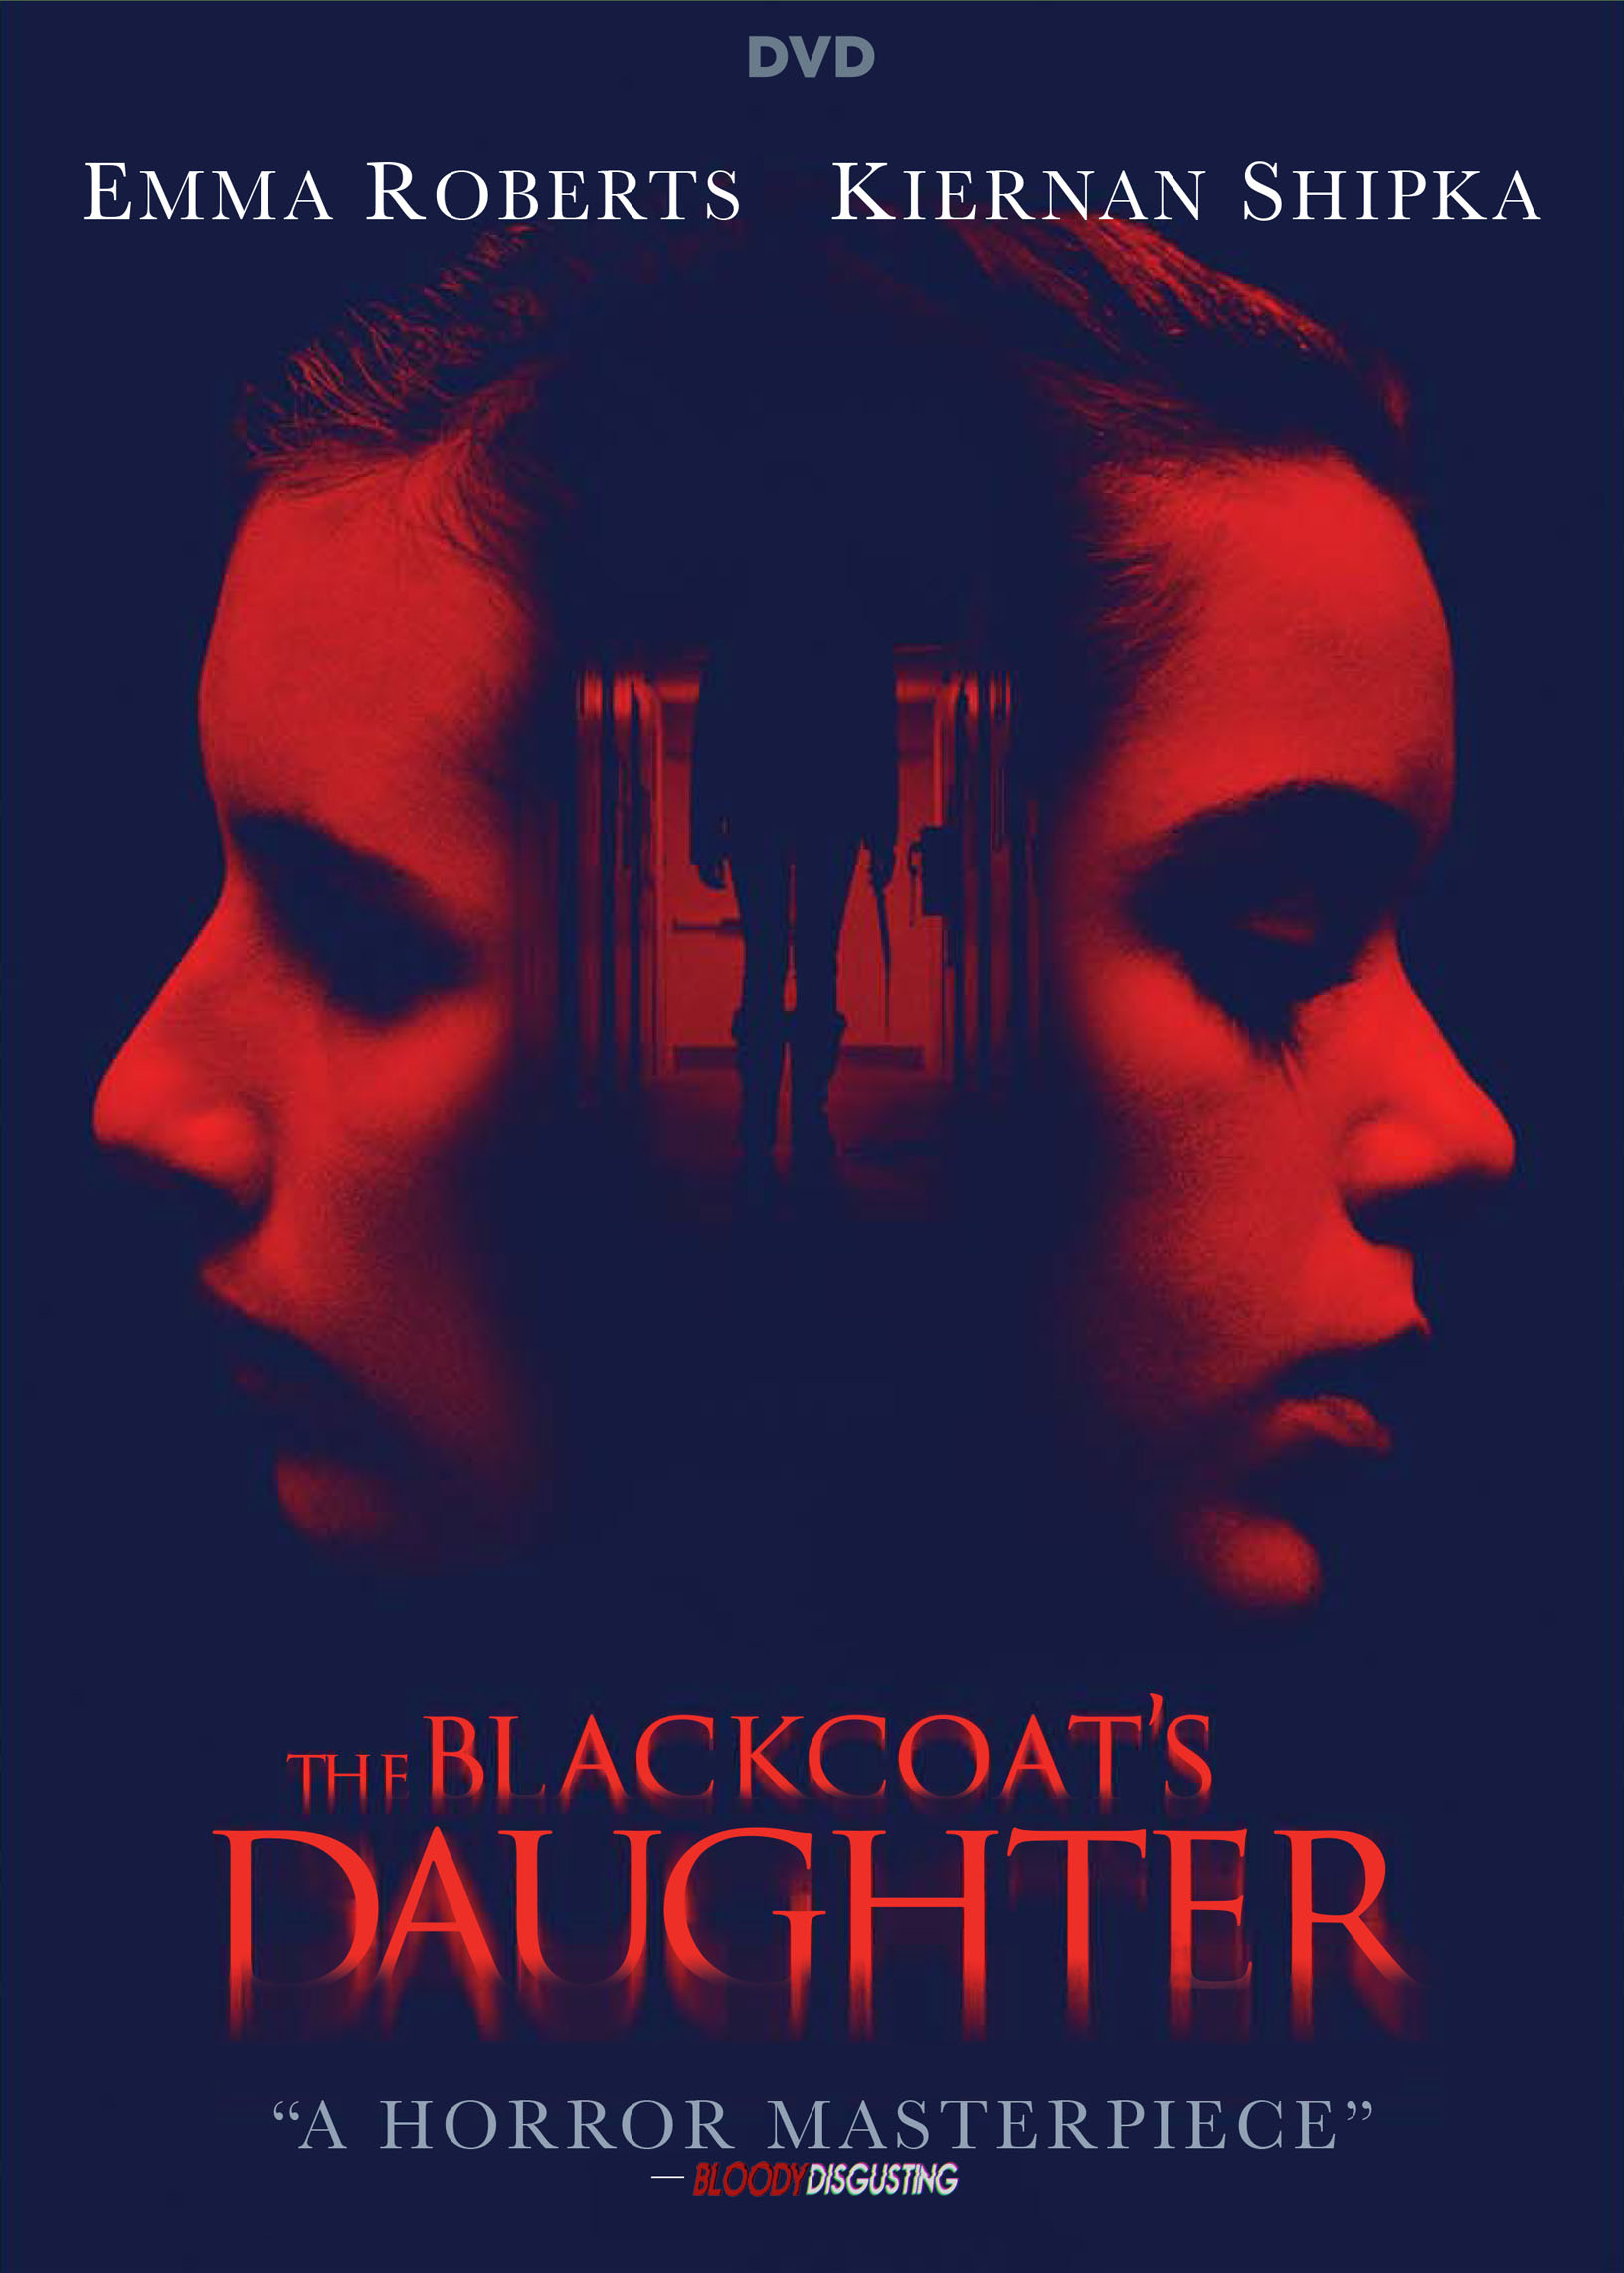 Blackcoat's Daughter